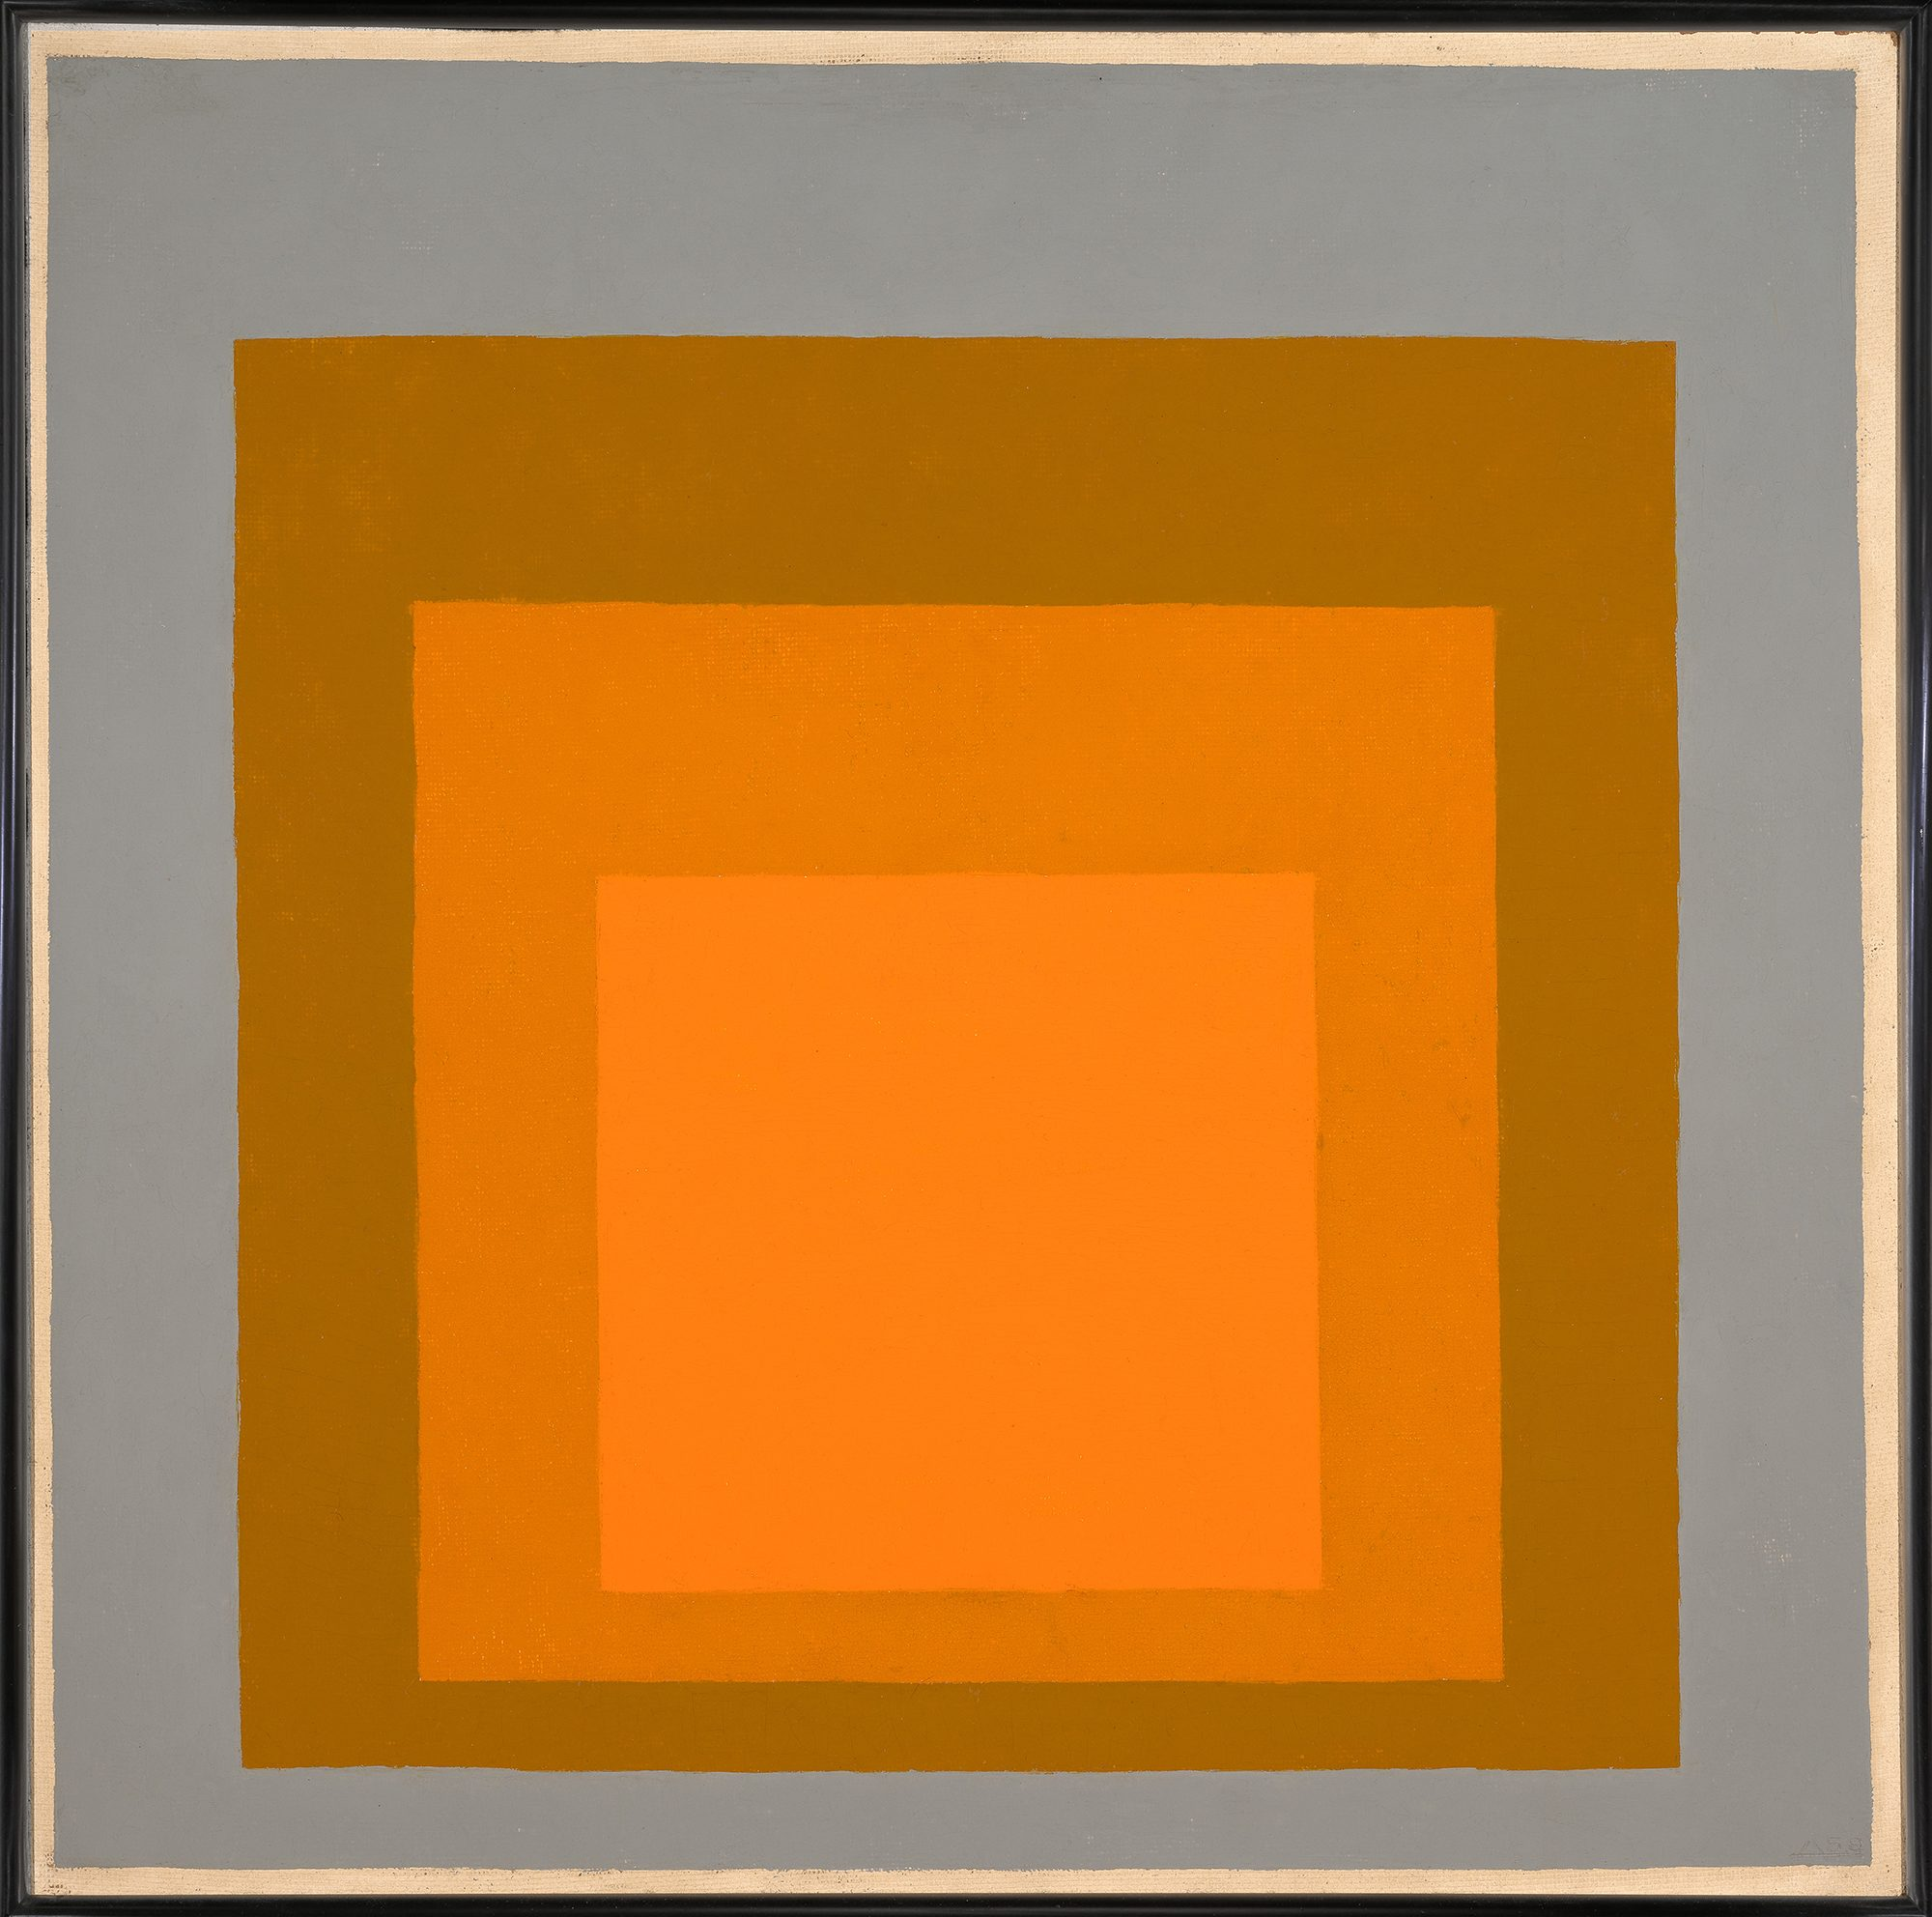 Josef Albers painting Homage to the Square: Warming, 1959 oil on Masonite Overall: 24 x 24 in. (61 x 61 cm) Gift of Jillion and Michael D. Weisberg, Class of 1993 M.2007.13